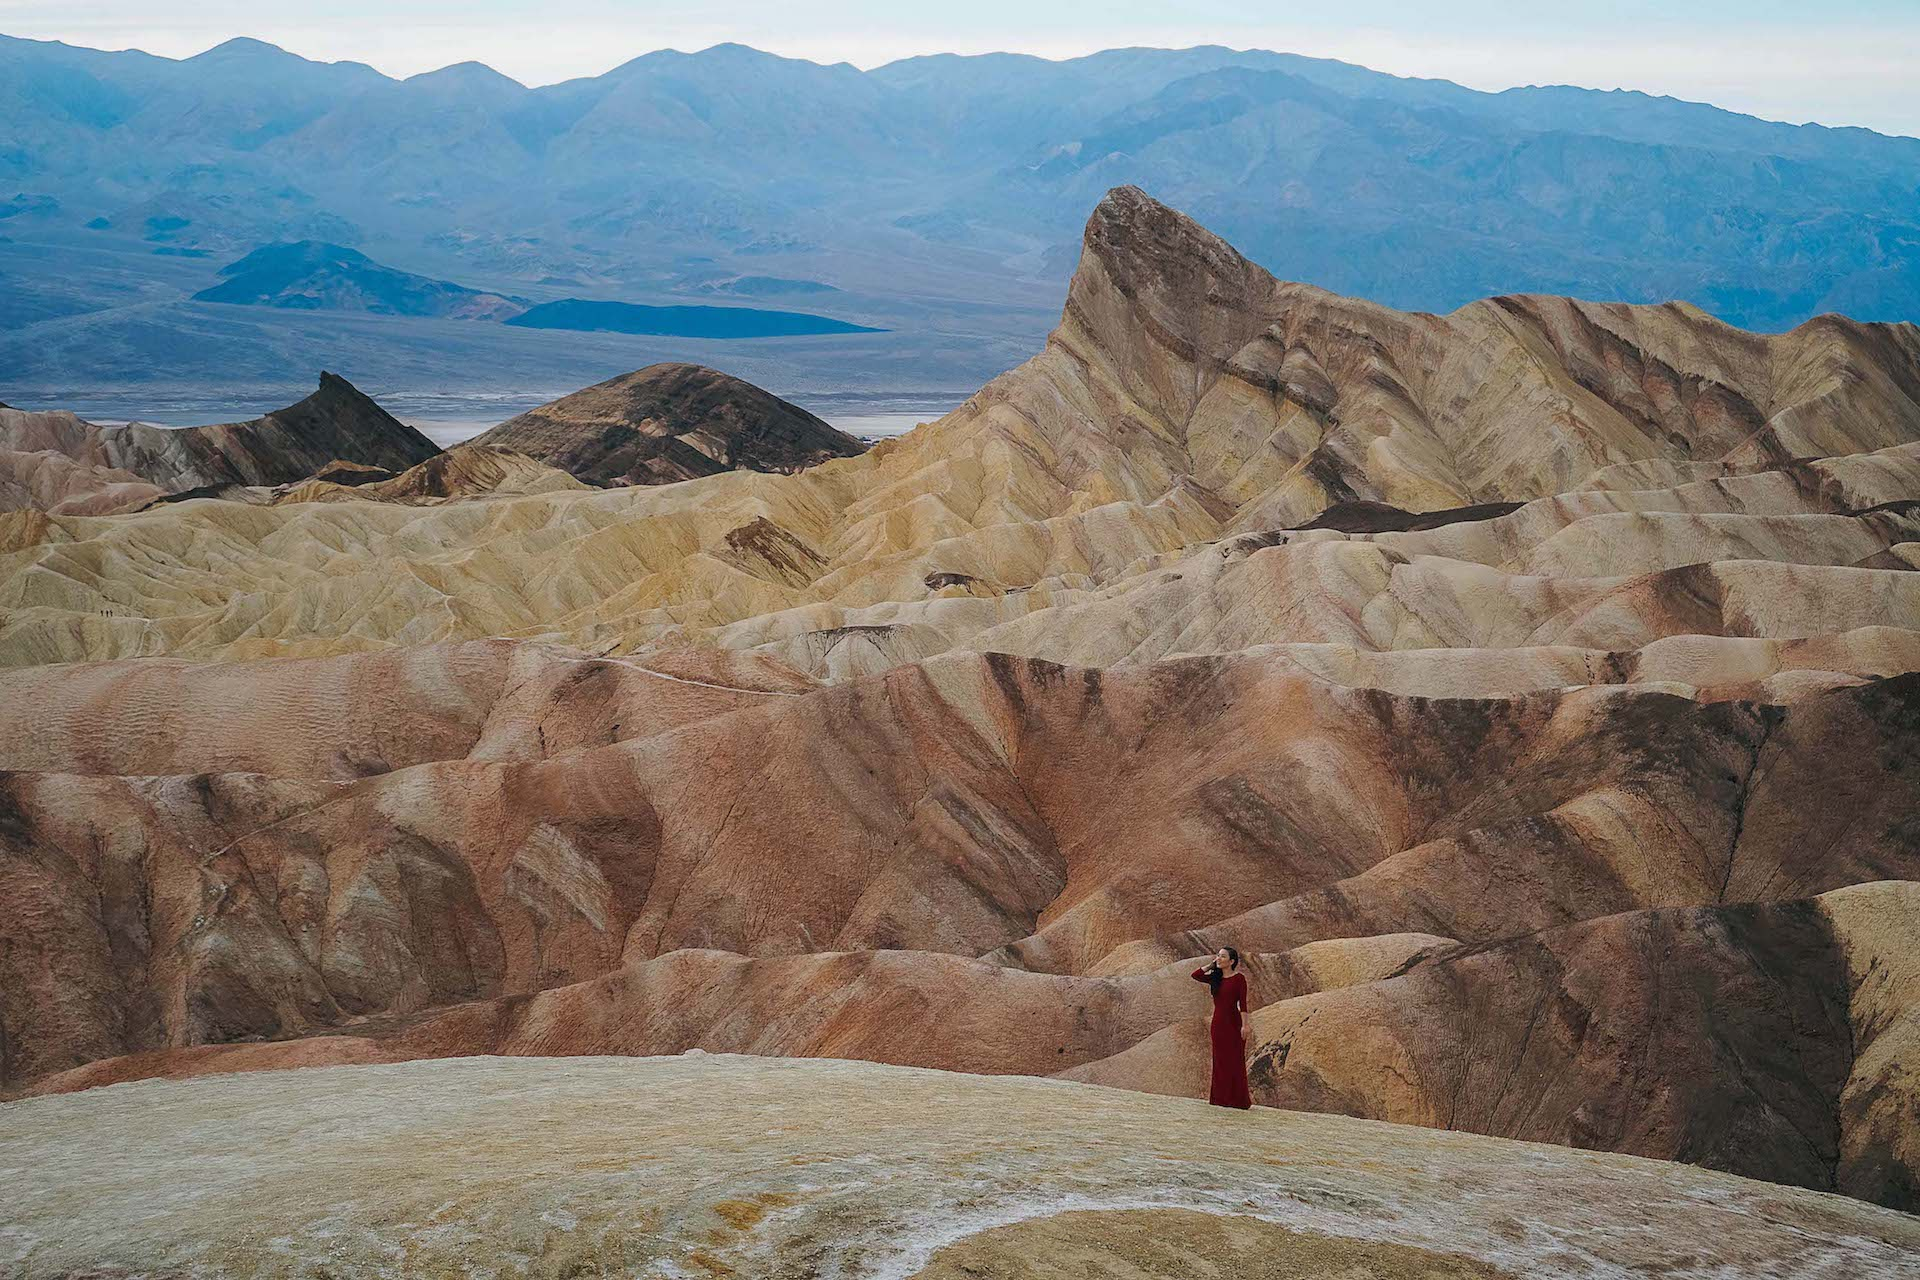 5 Things To Know for Your Death Valley Road Trip